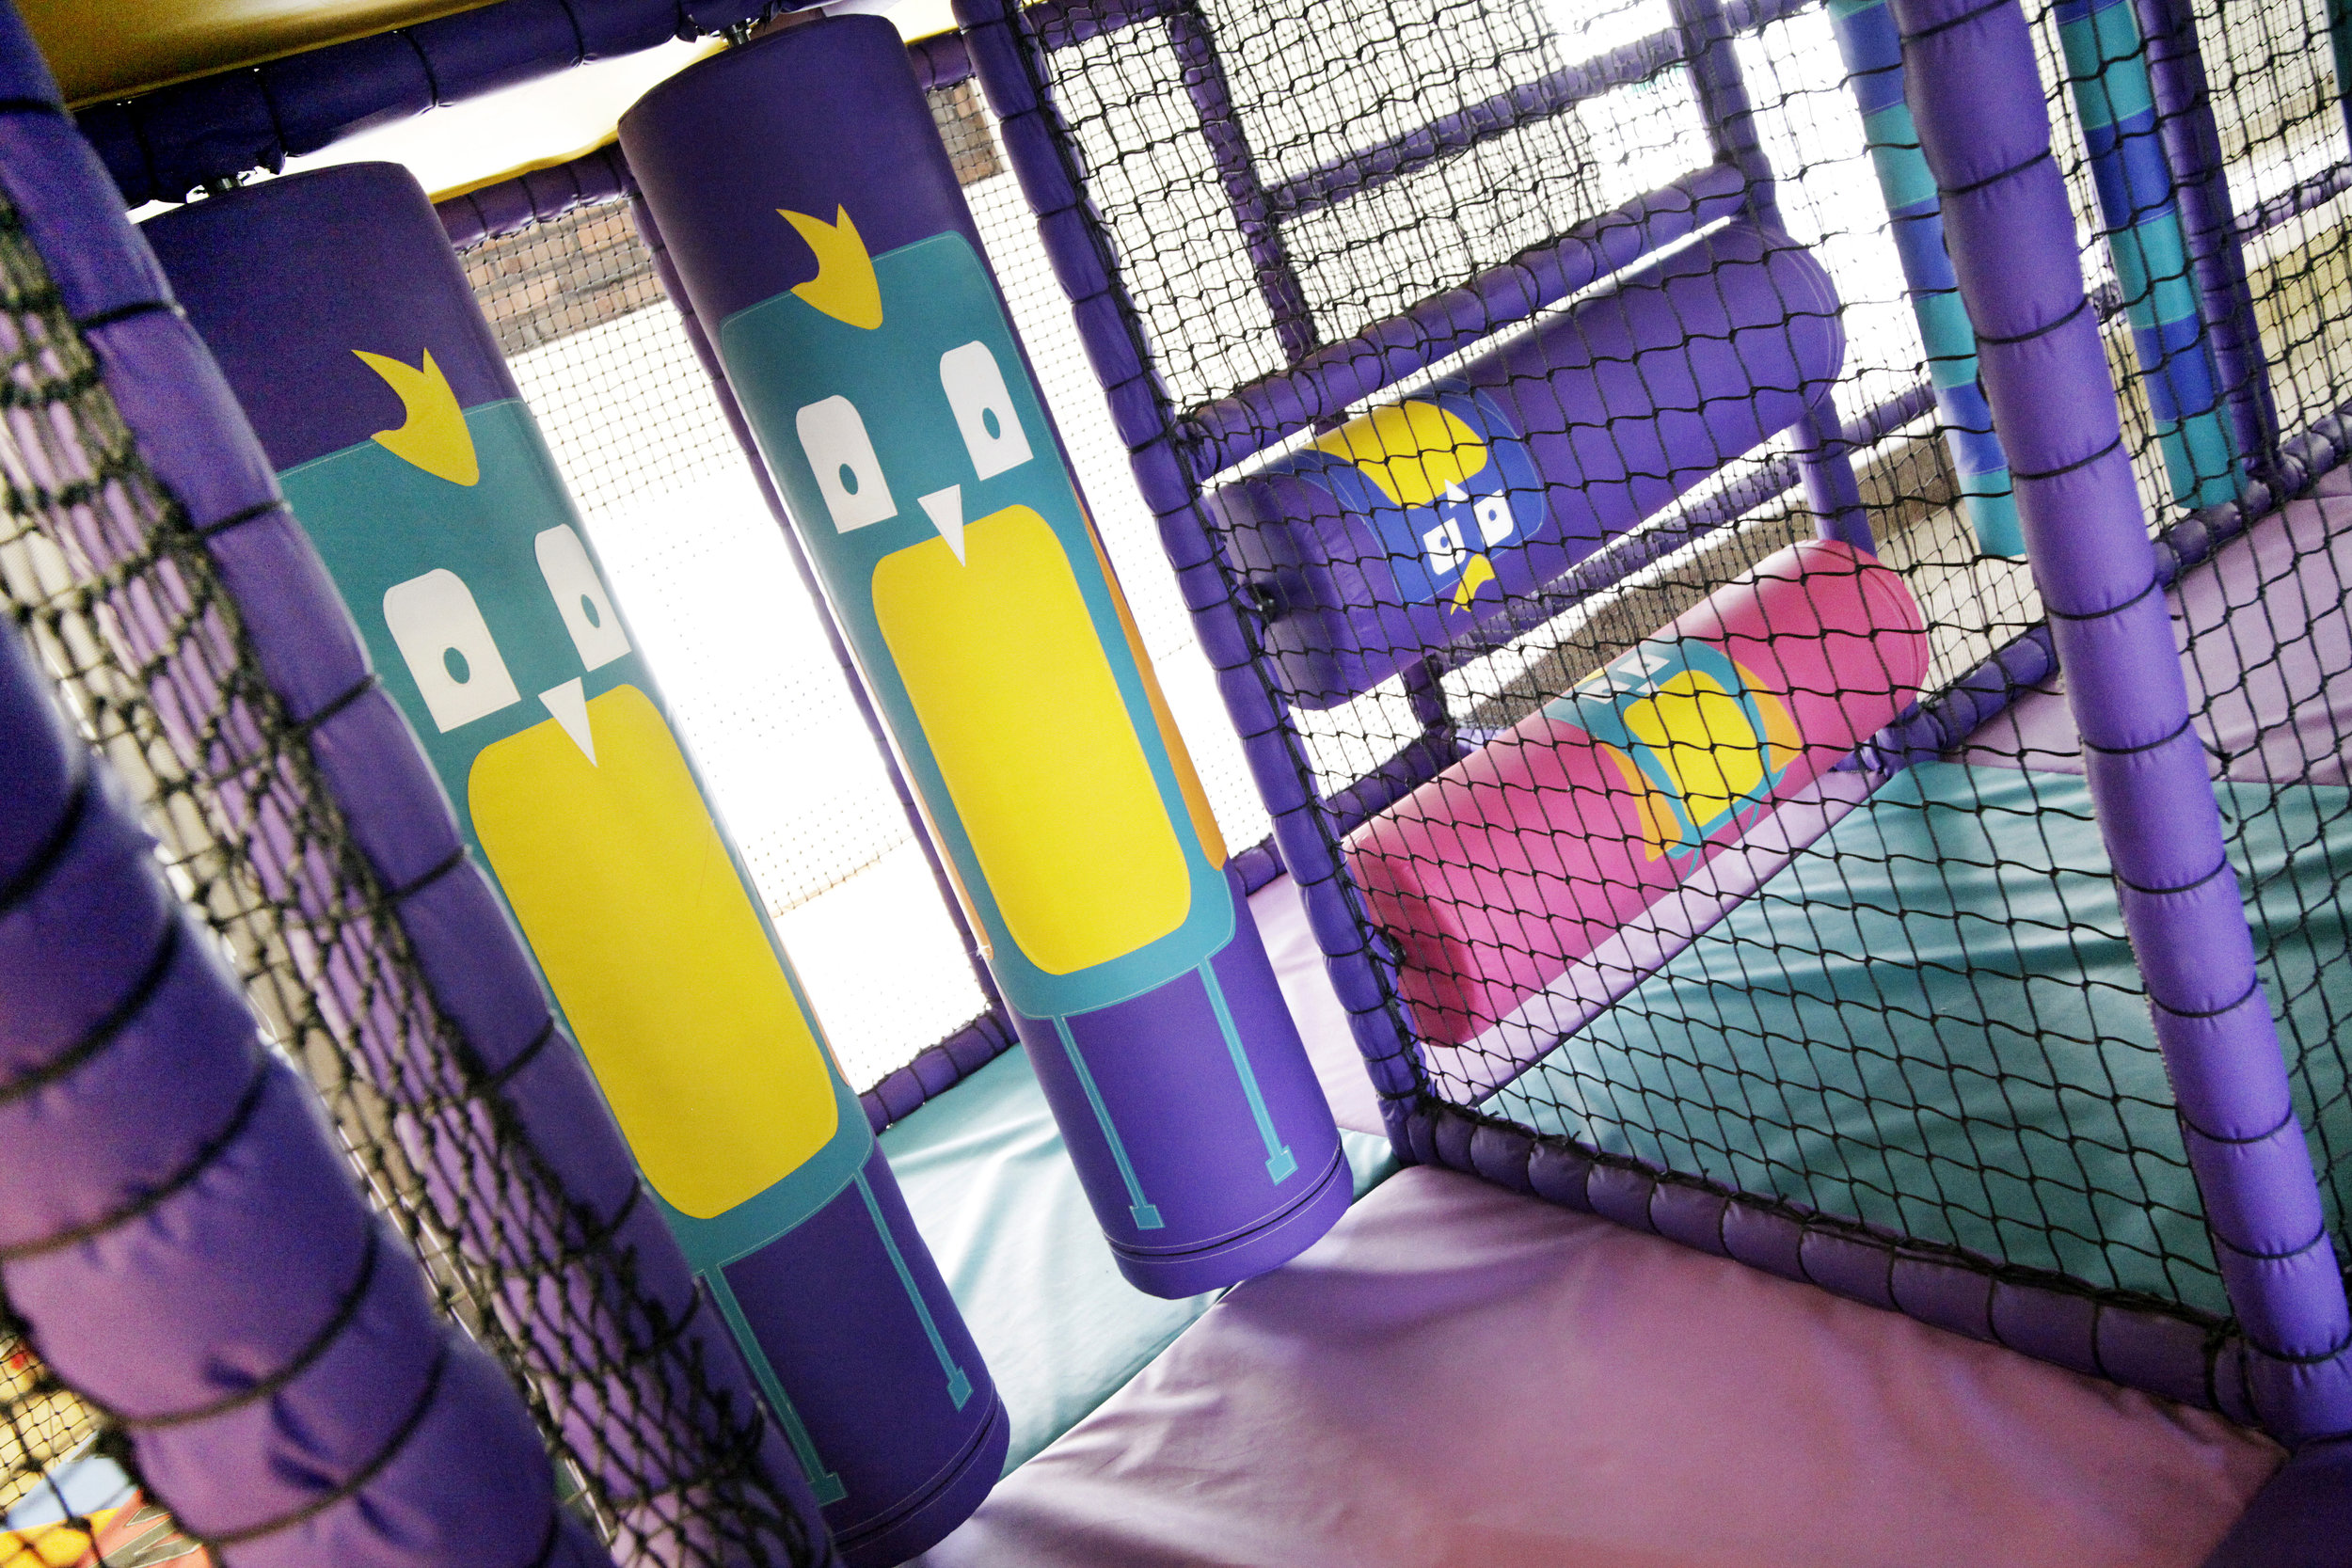 Soft Play - Designed to suit the younger generation!